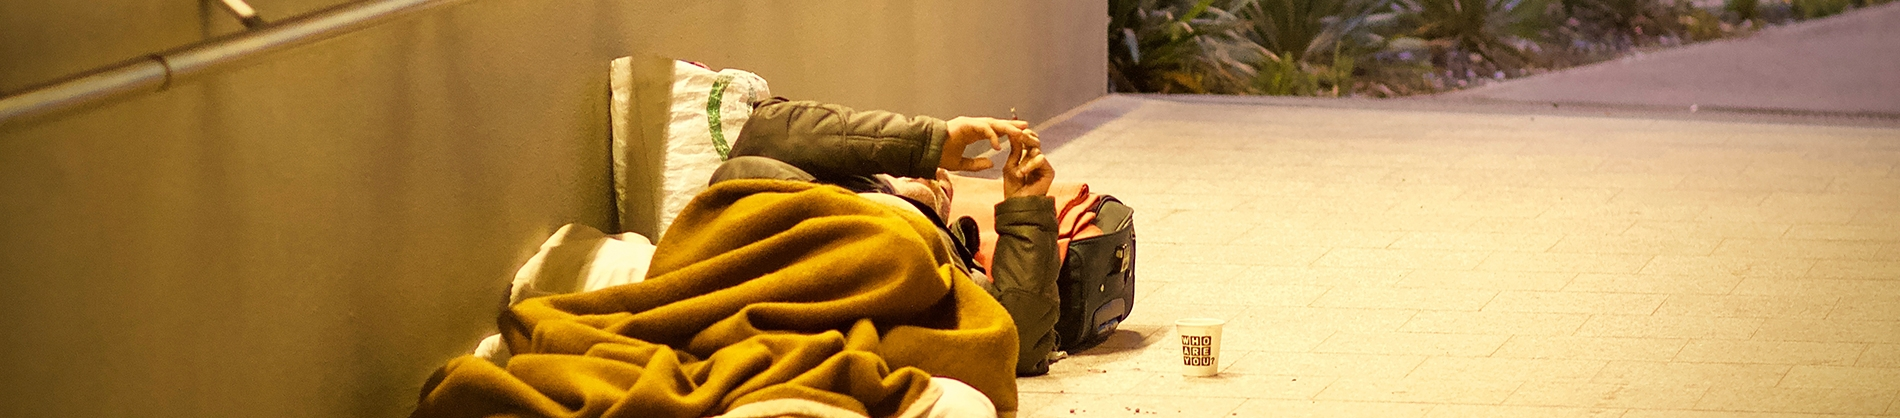 A homeless man lying on the floor in a underpass